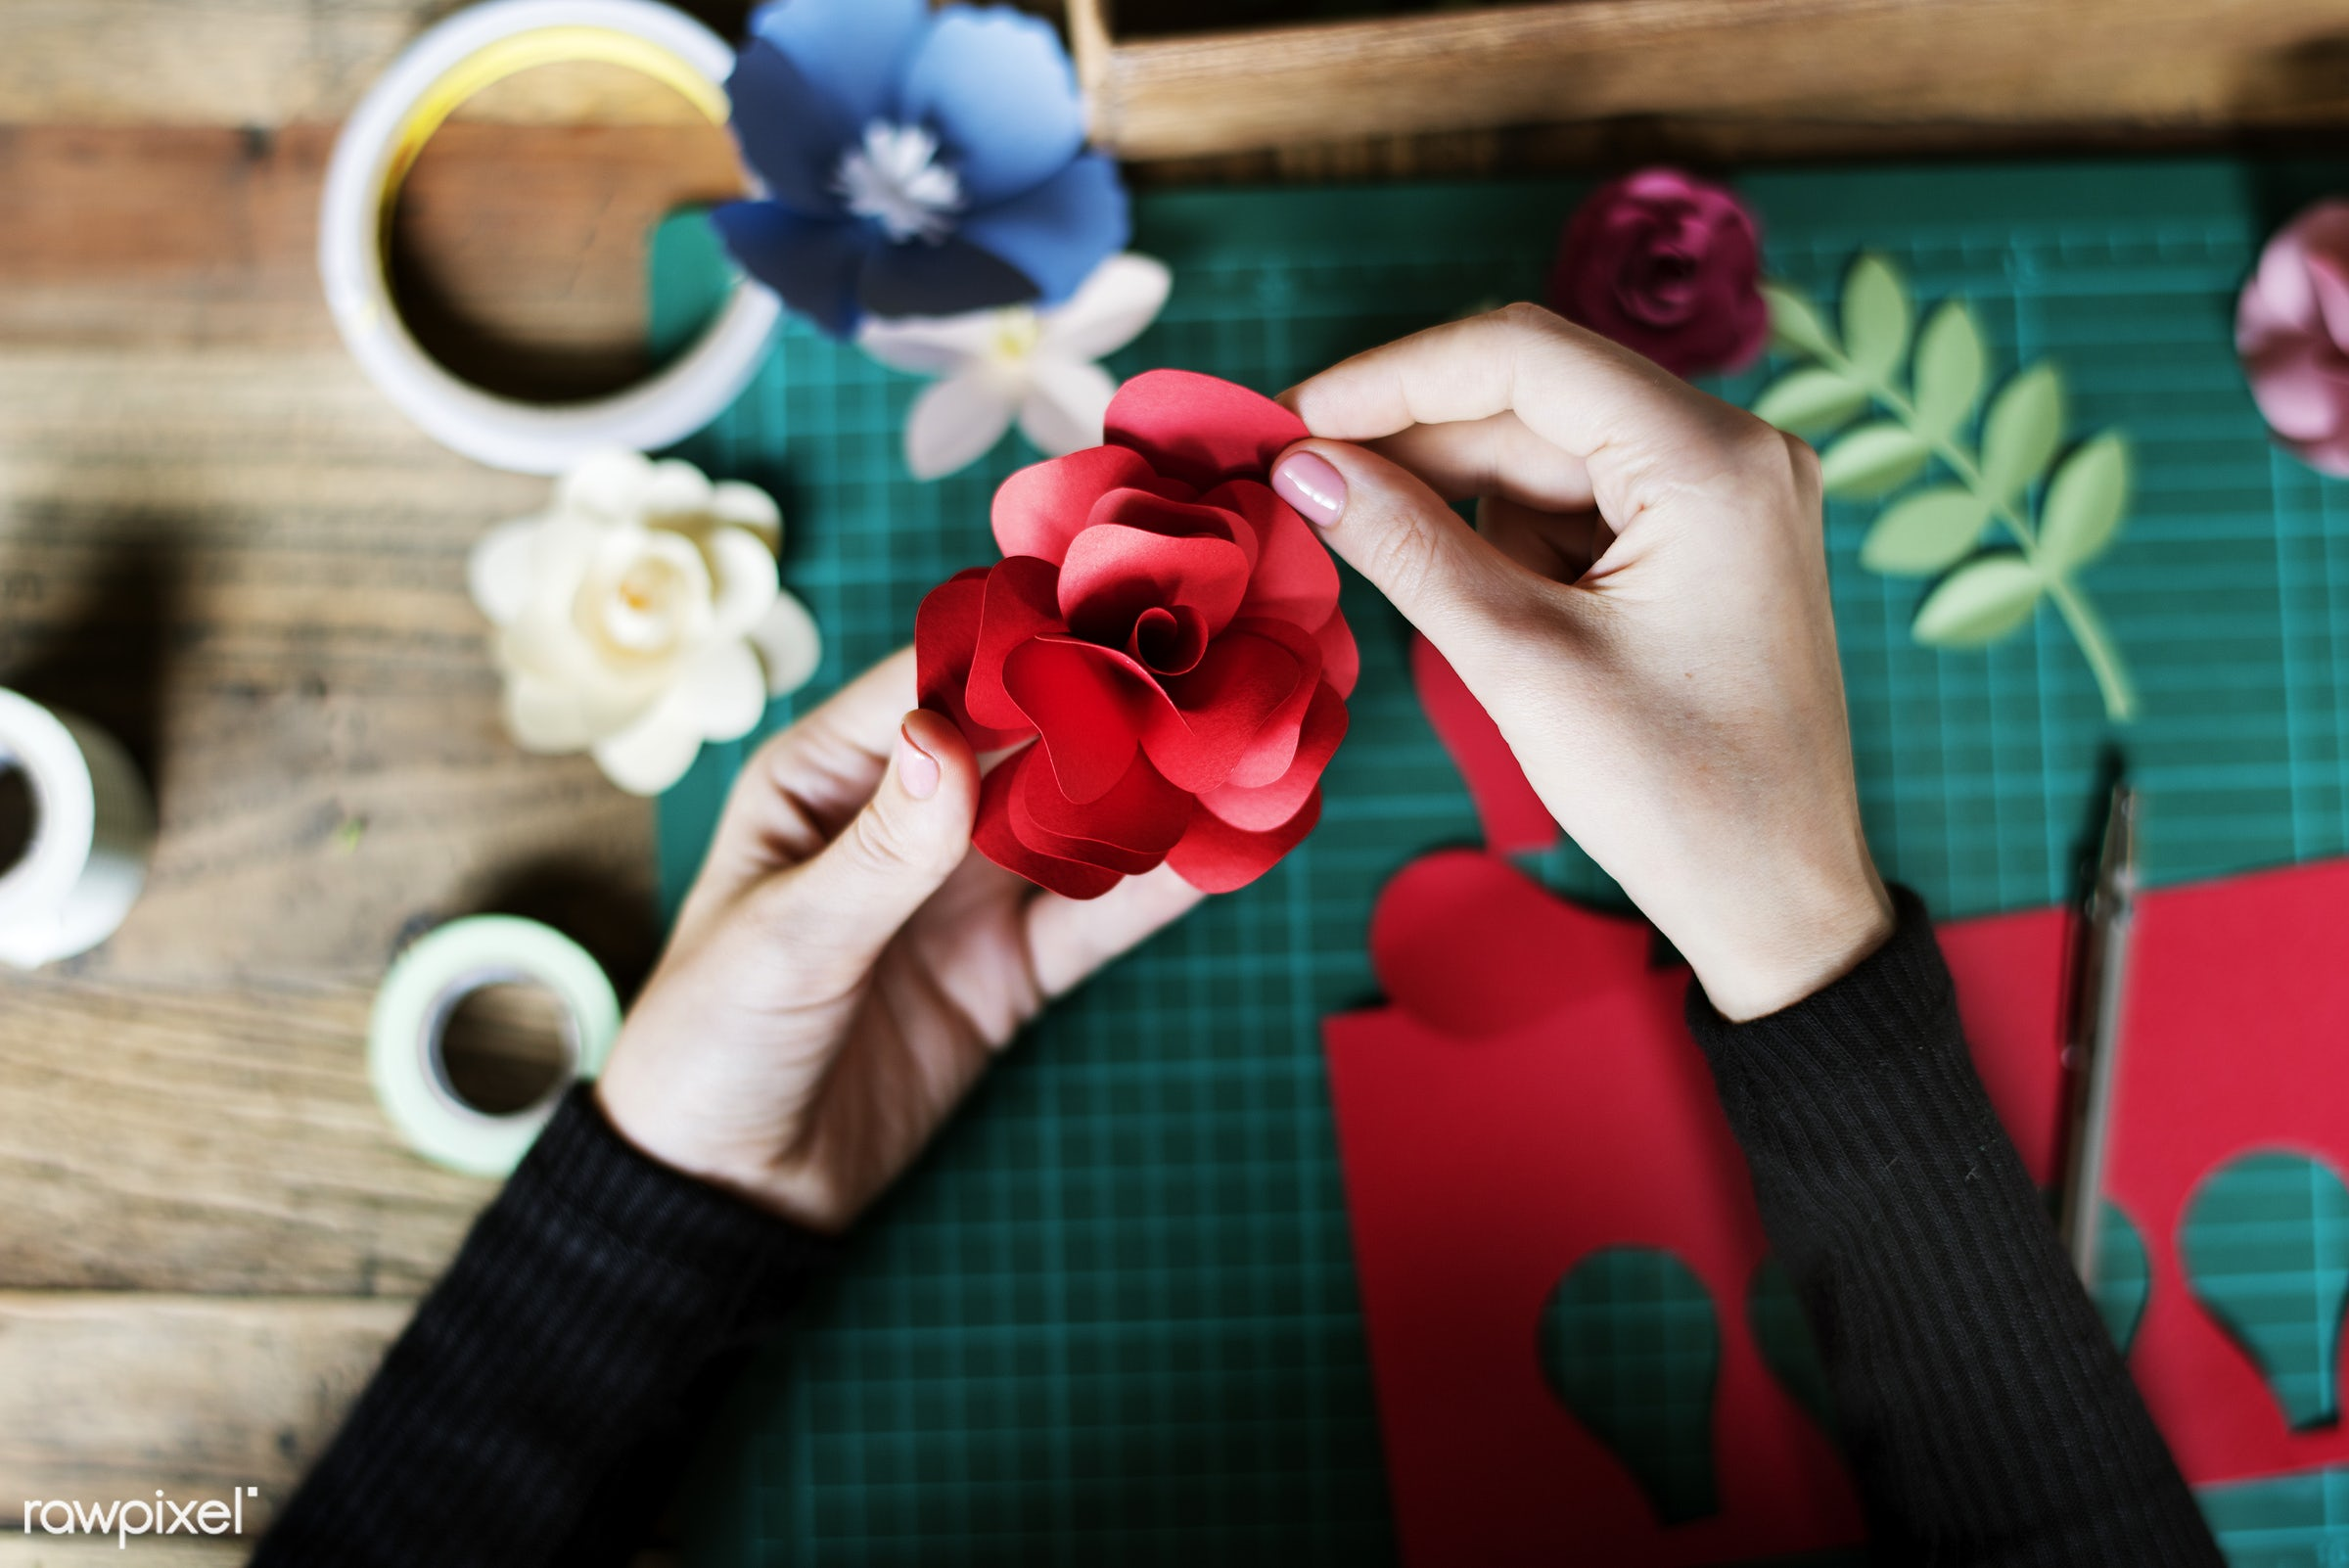 craft, handicraft, leaf, creativity, blossom, hands, working, aerial view, flower, ideas, paper craft, creative, decoration...